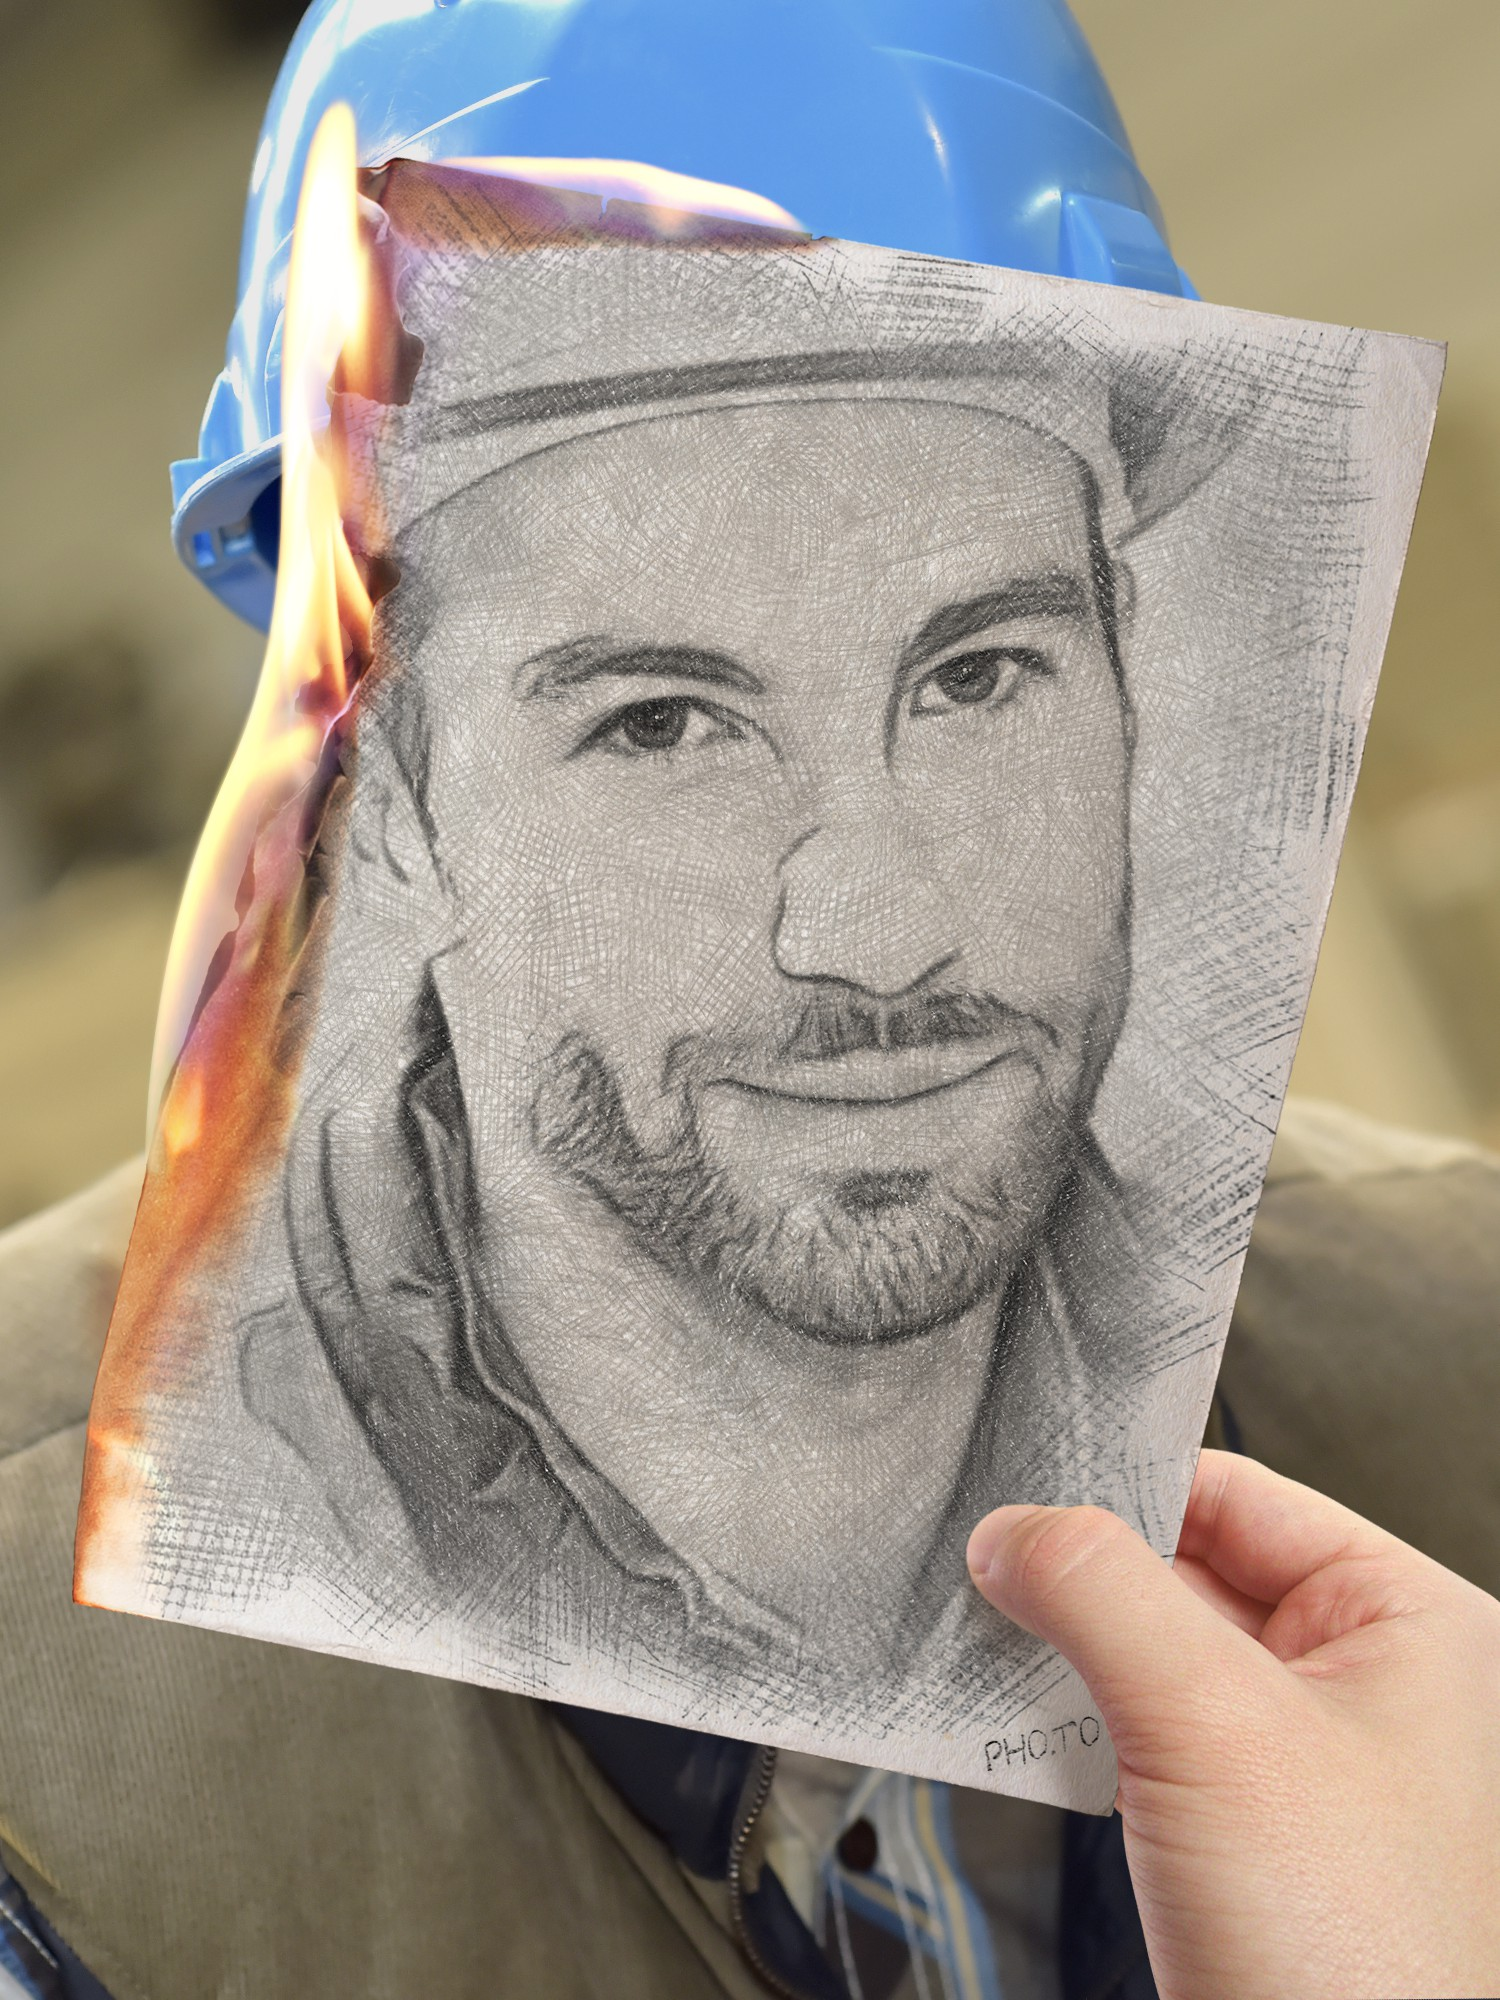 A steelmelter's portrait photo turned into a burning sketch